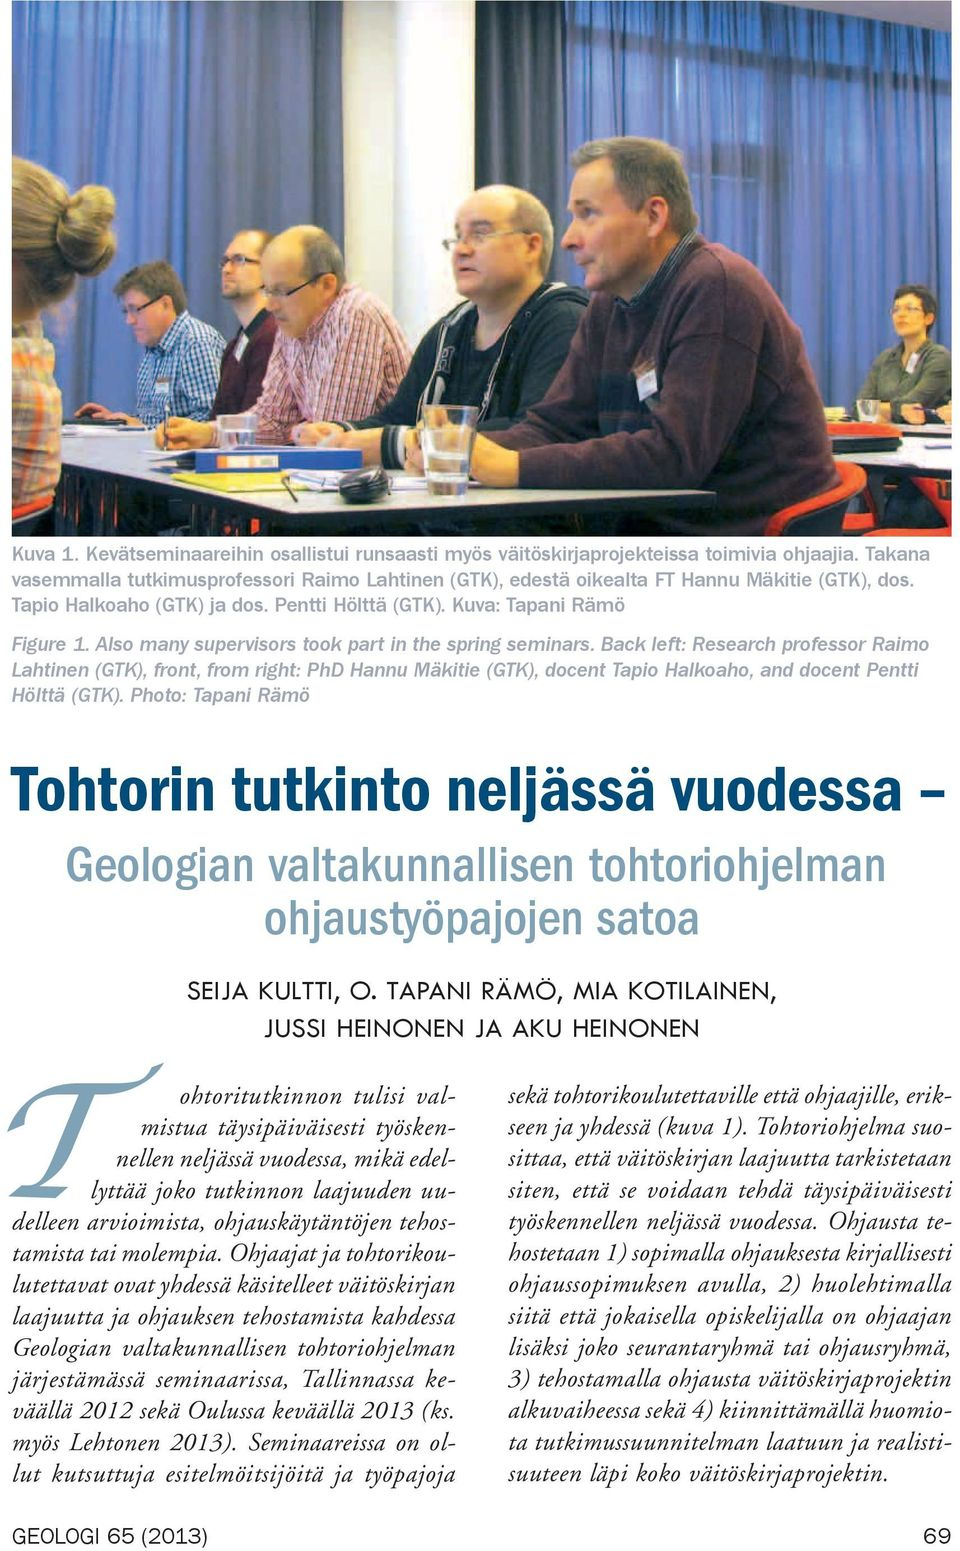 Back left: Research professor Raimo Lahtinen (GTK), front, from right: PhD Hannu Mäkitie (GTK), docent Tapio Halkoaho, and docent Pentti Hölttä (GTK).